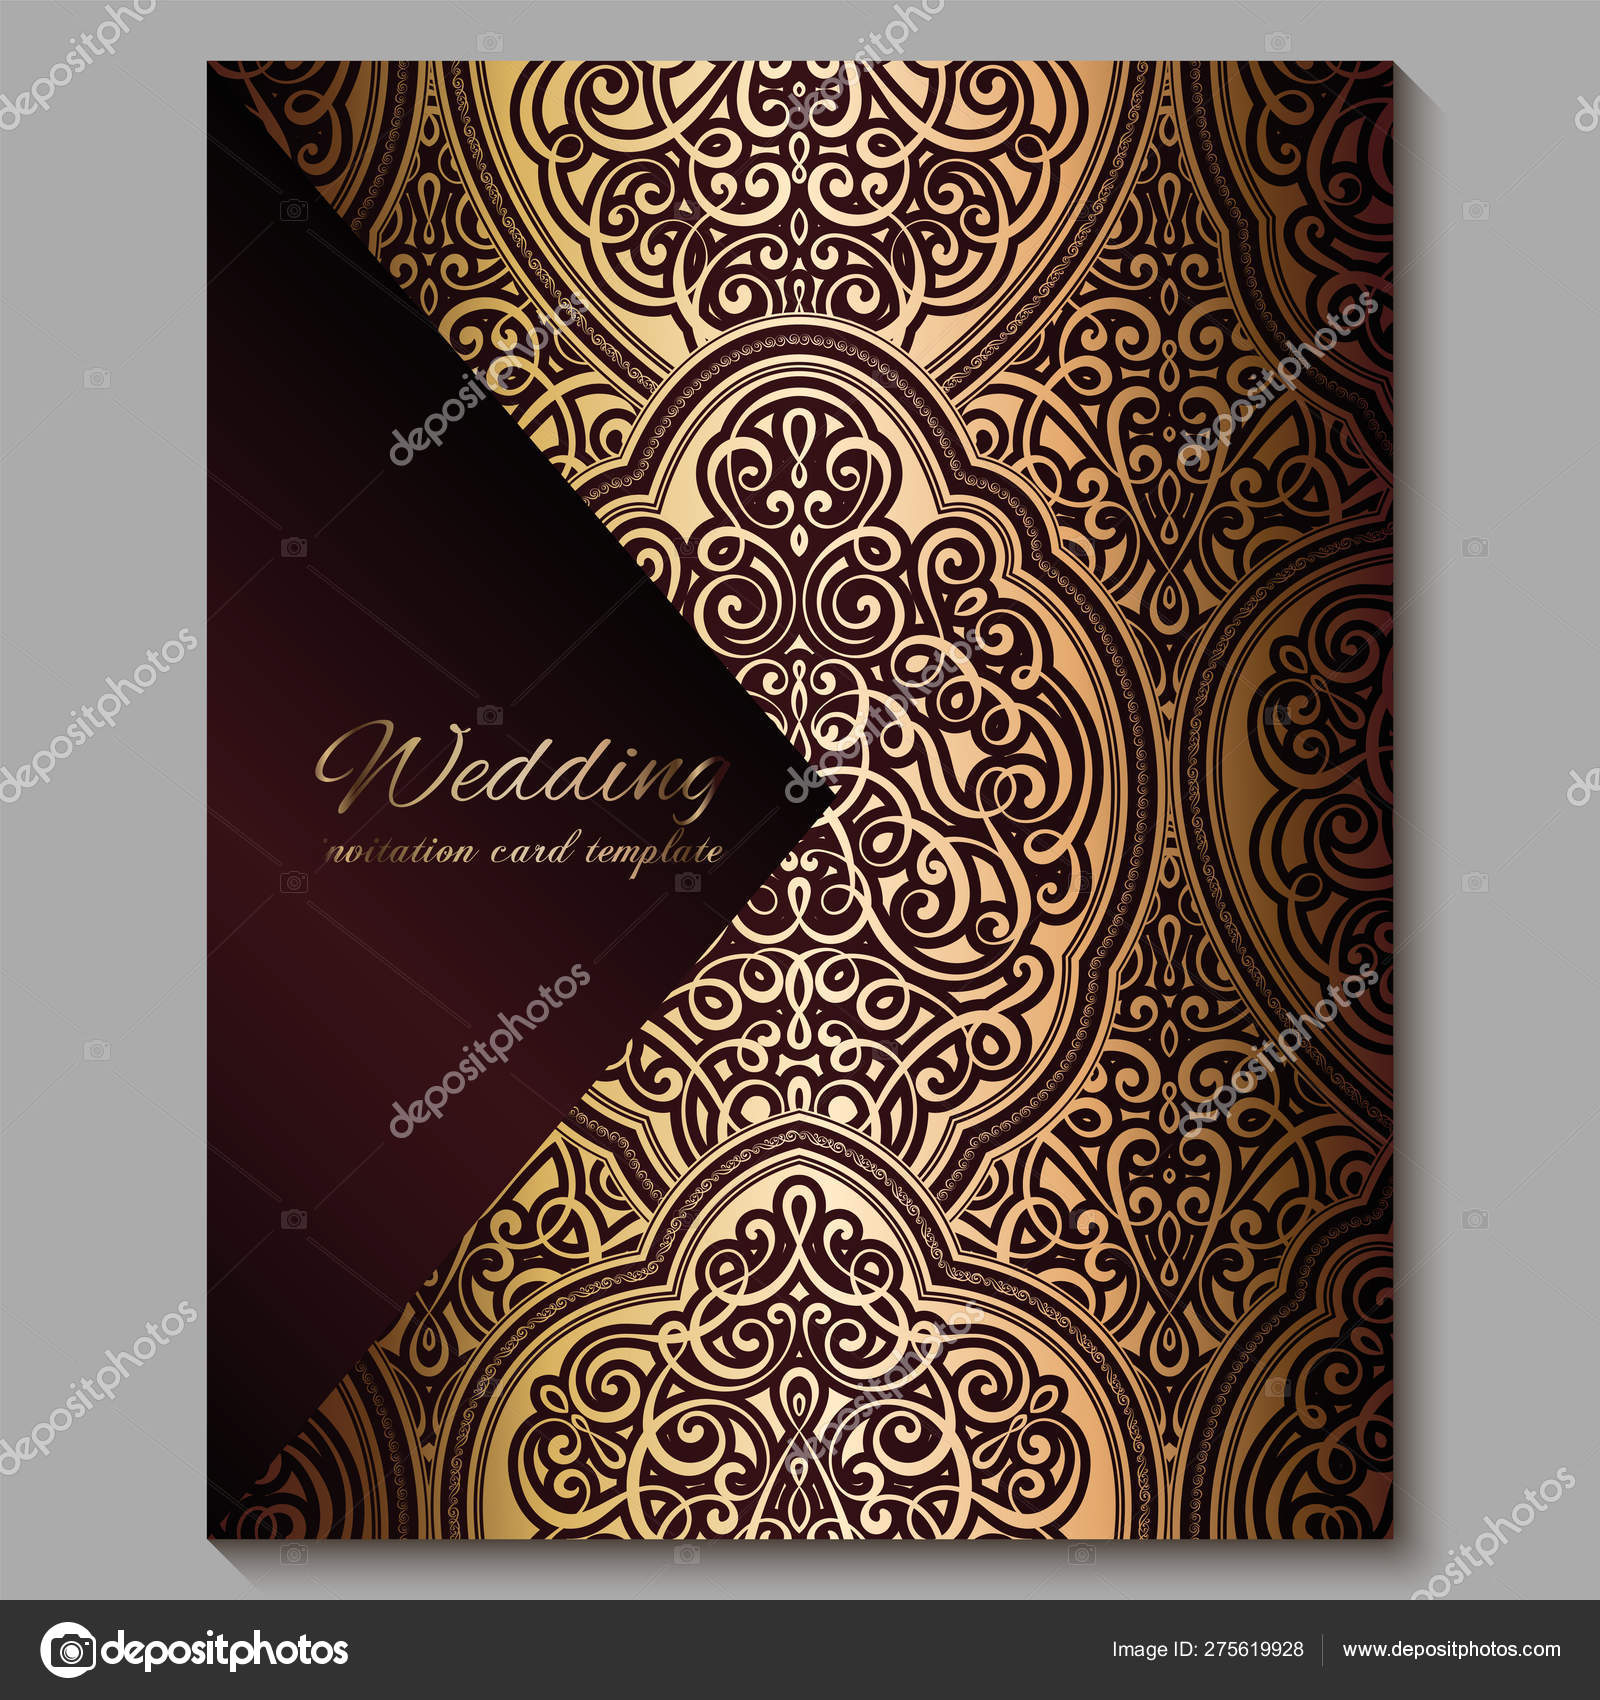 Wedding Invitation Card With Gold Shiny Eastern And Baroque Rich Foliage Royal Red Ornate Islamic Background For Your Design Islam Arabic Indian Dubai Stock Vector C Miamilky 275619928